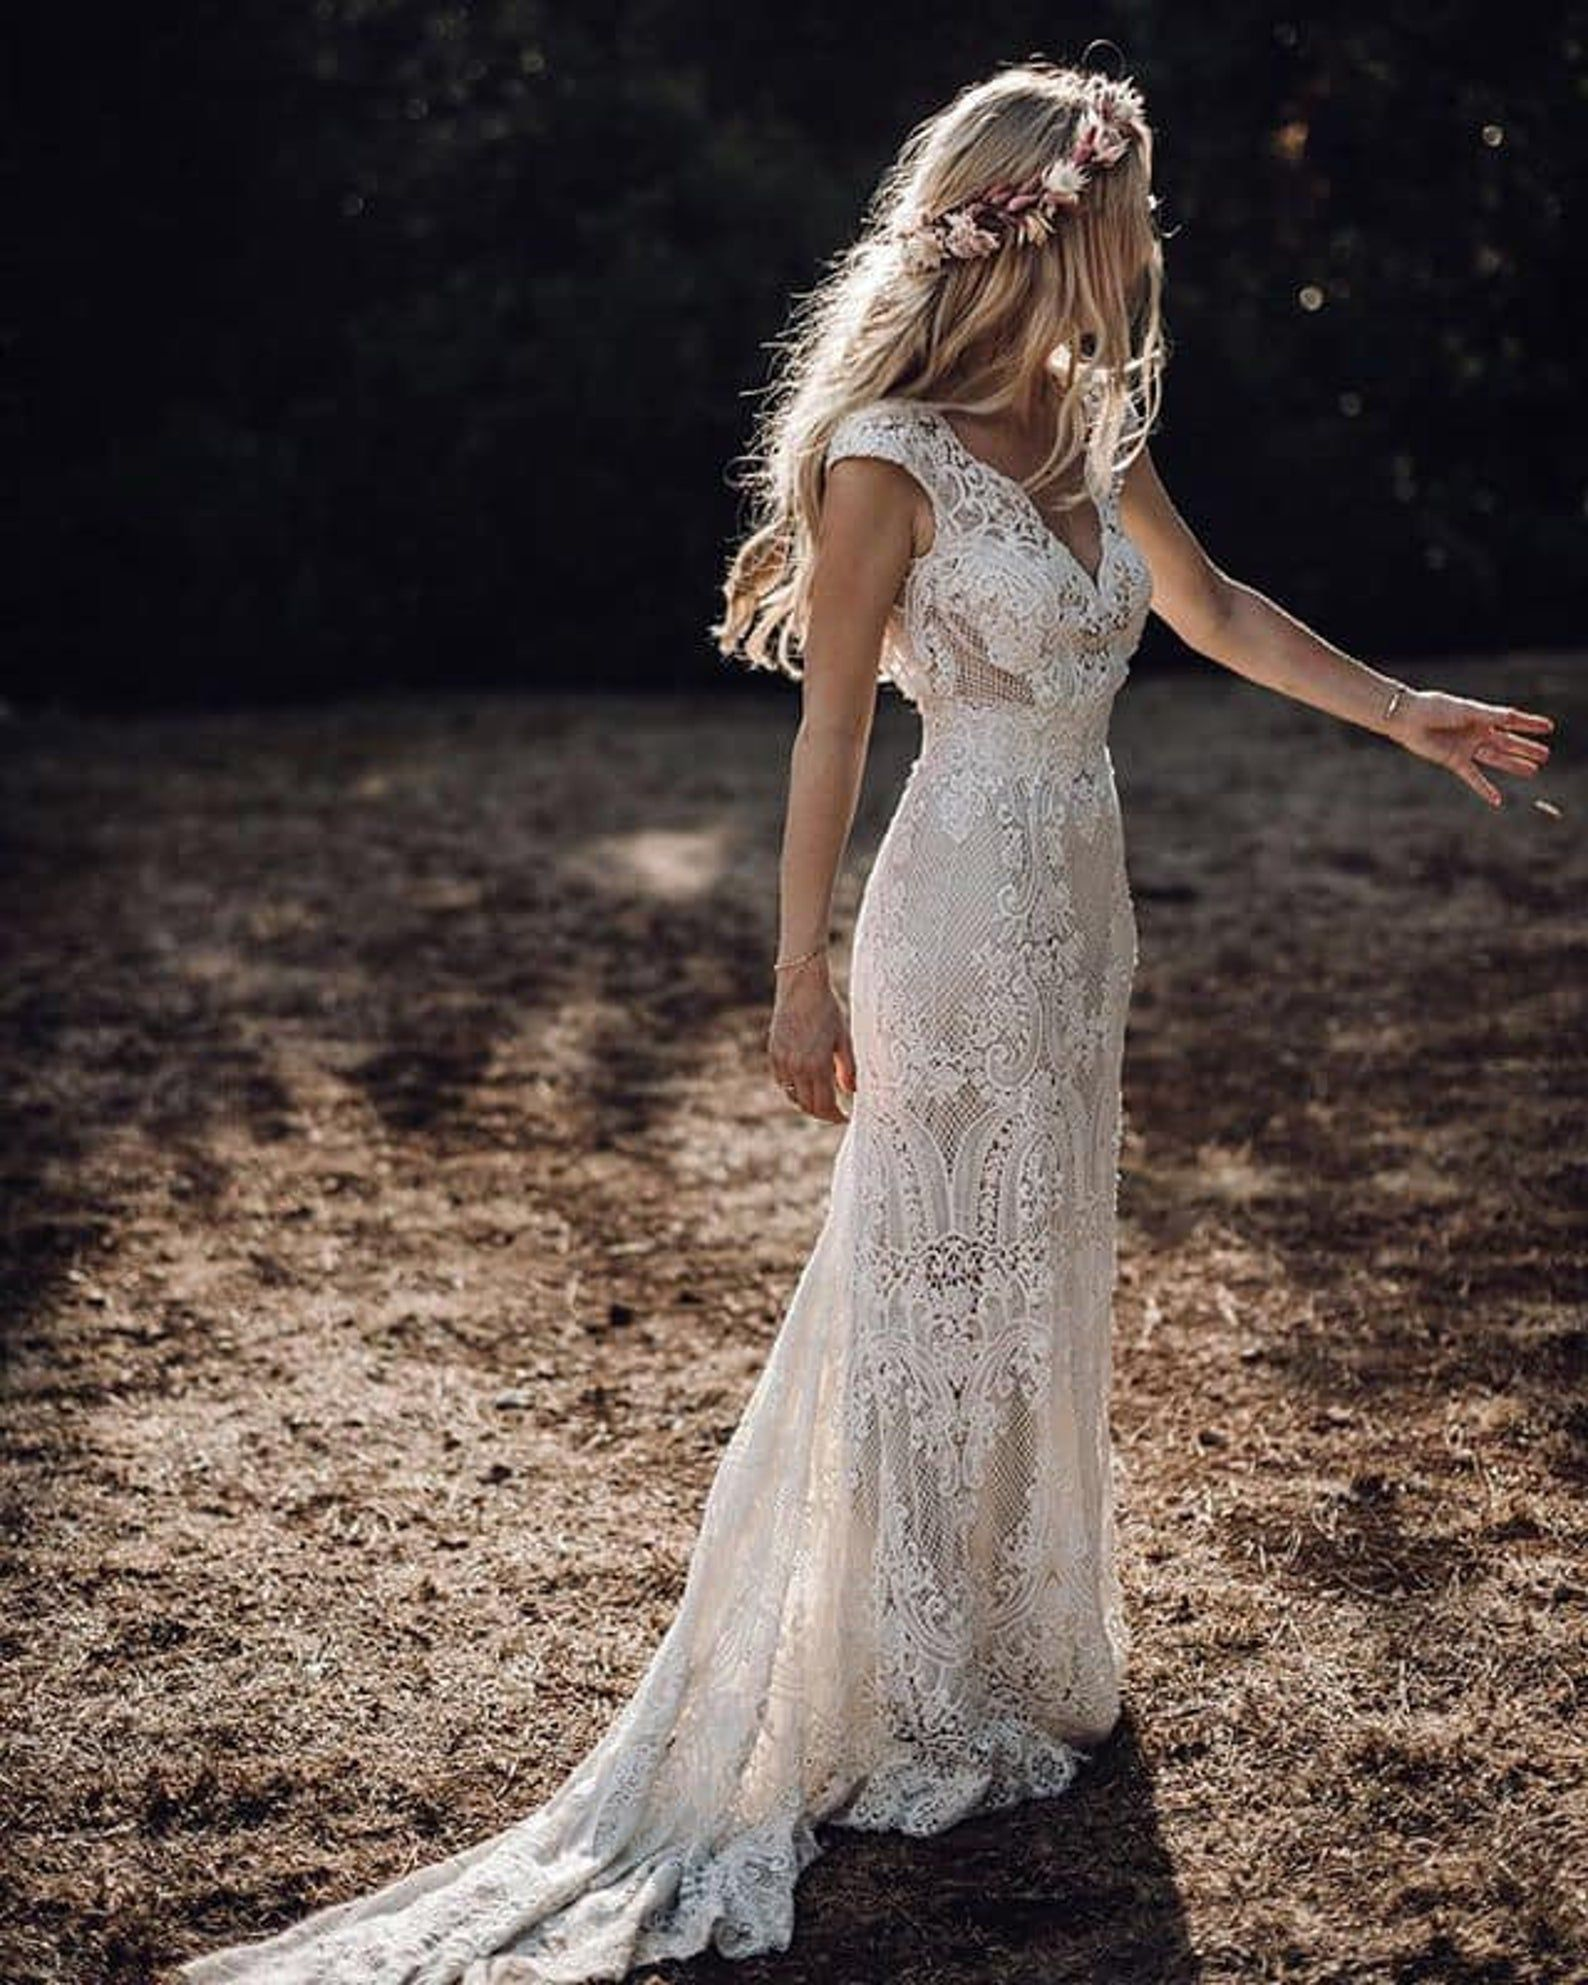 EVELINE Intricate full lace wedding dress in 20   Online ...